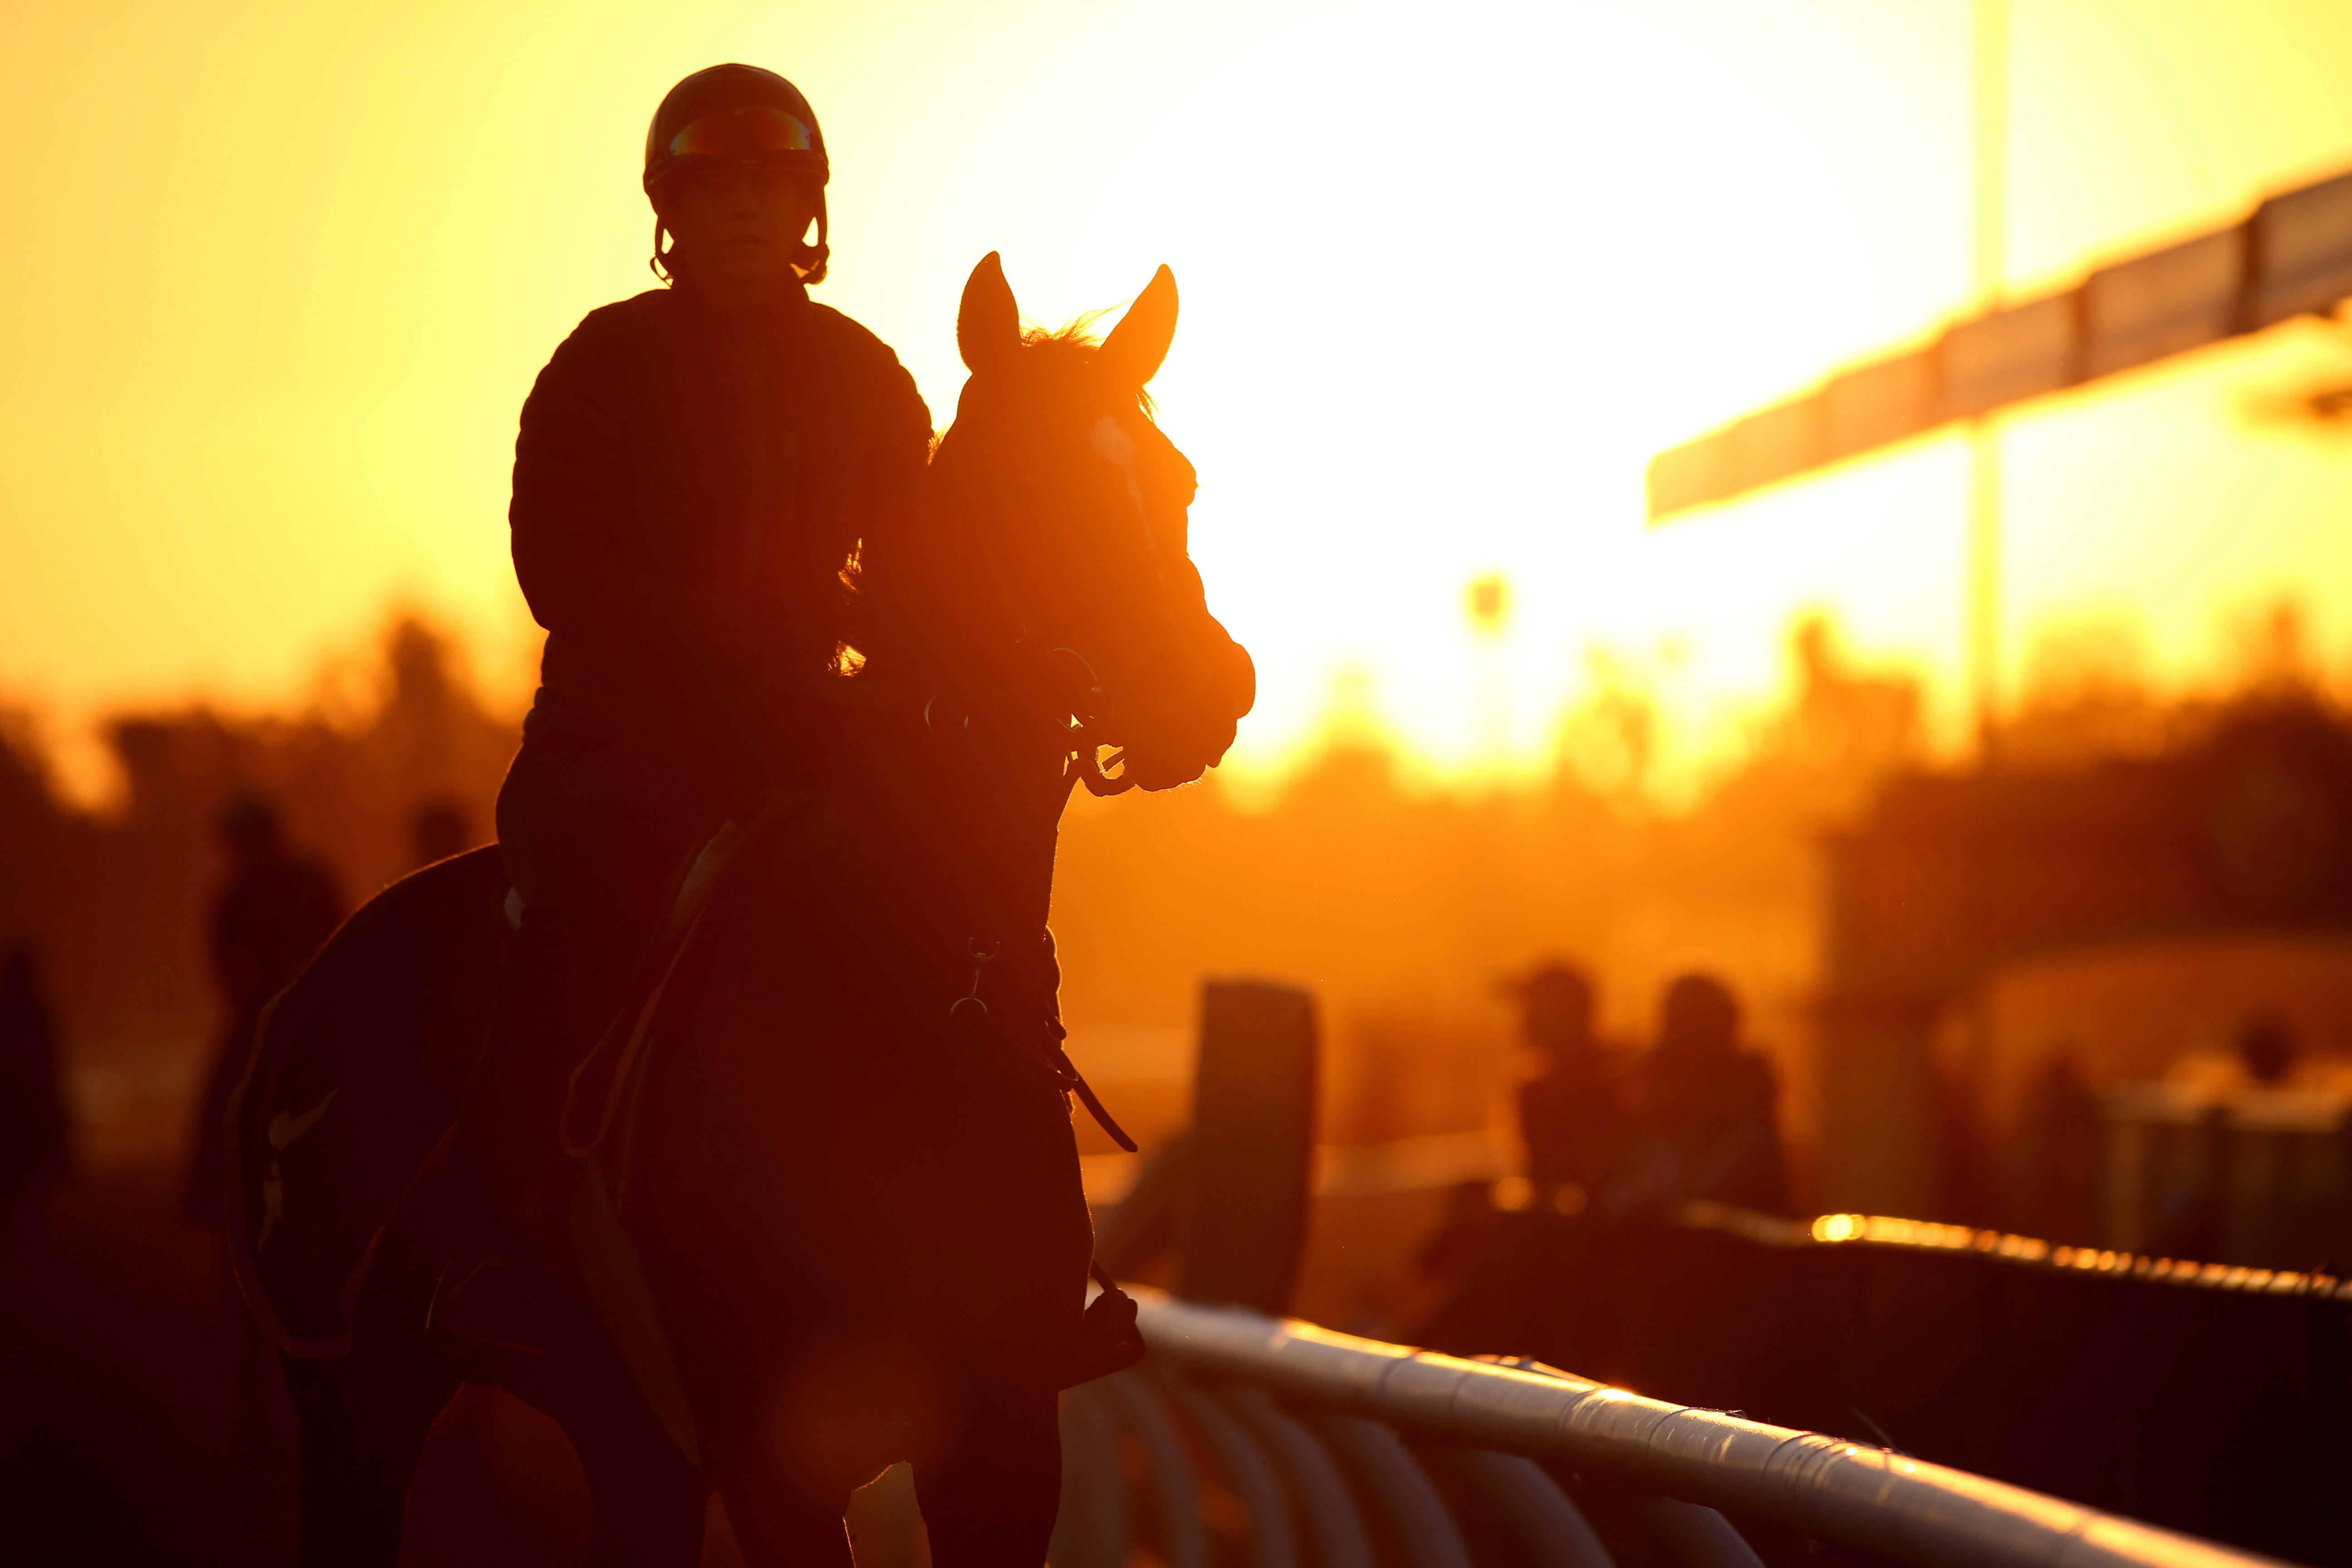 The CEO of US Concrete spent $120,000 for a stake in a horse that's favored to win $1 million at the Breeder's Cup